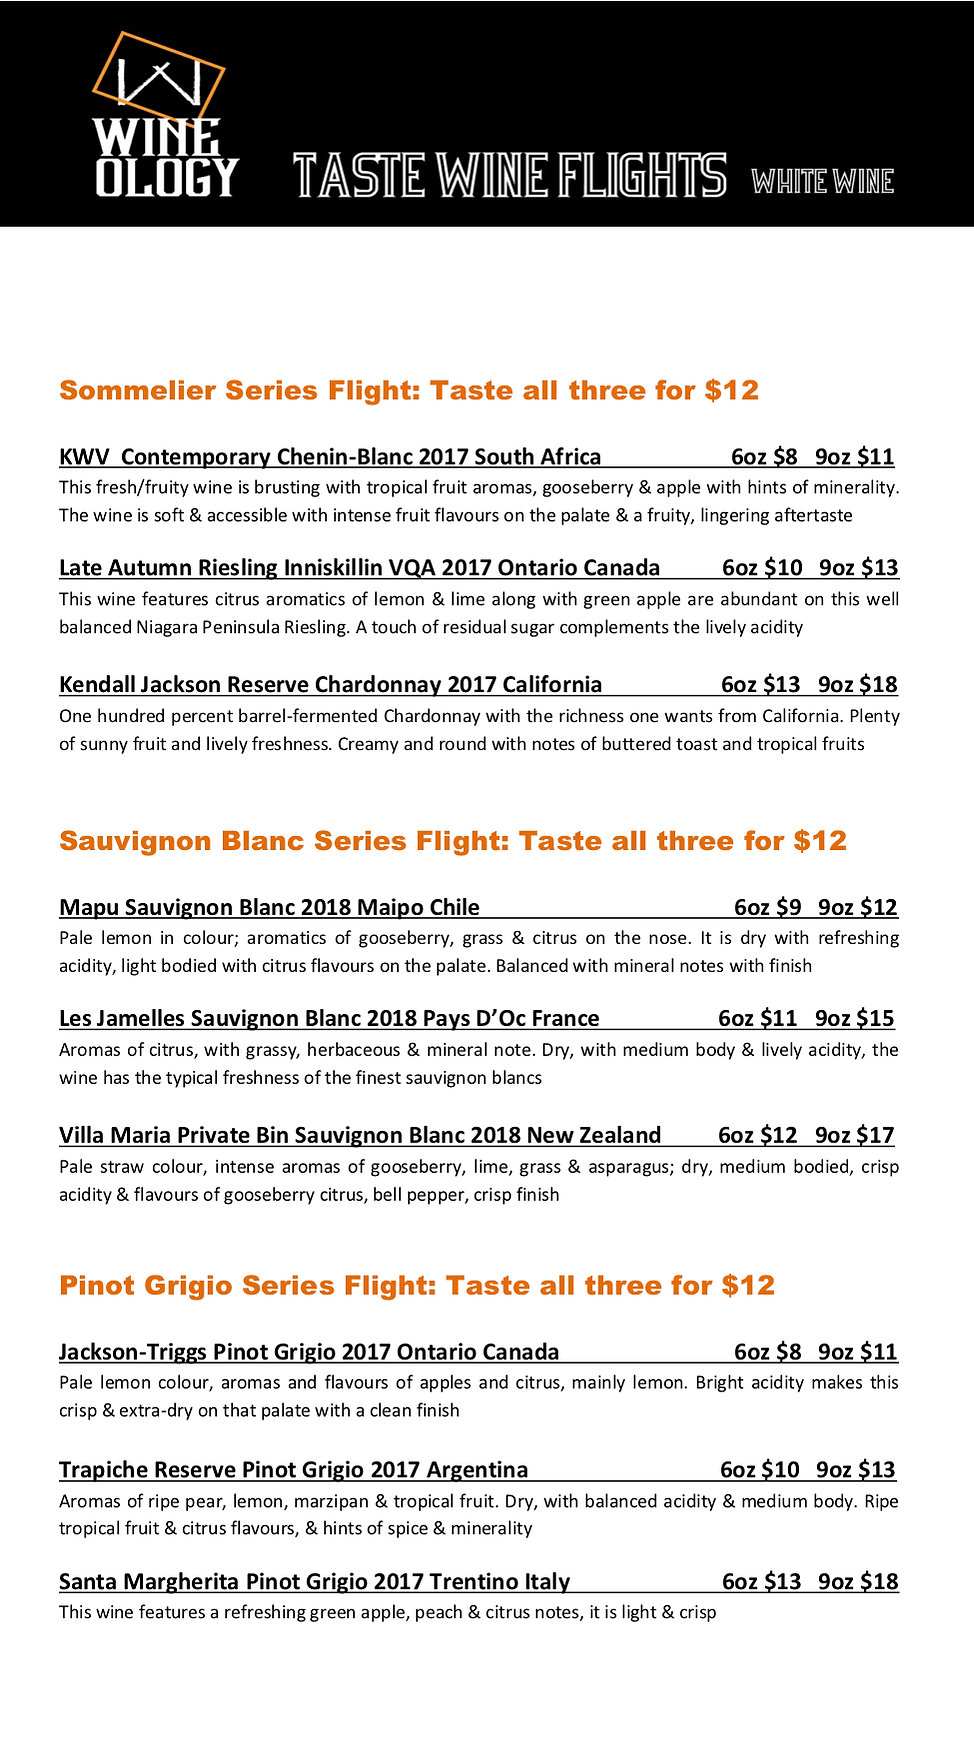 White Flight - p1.jpg